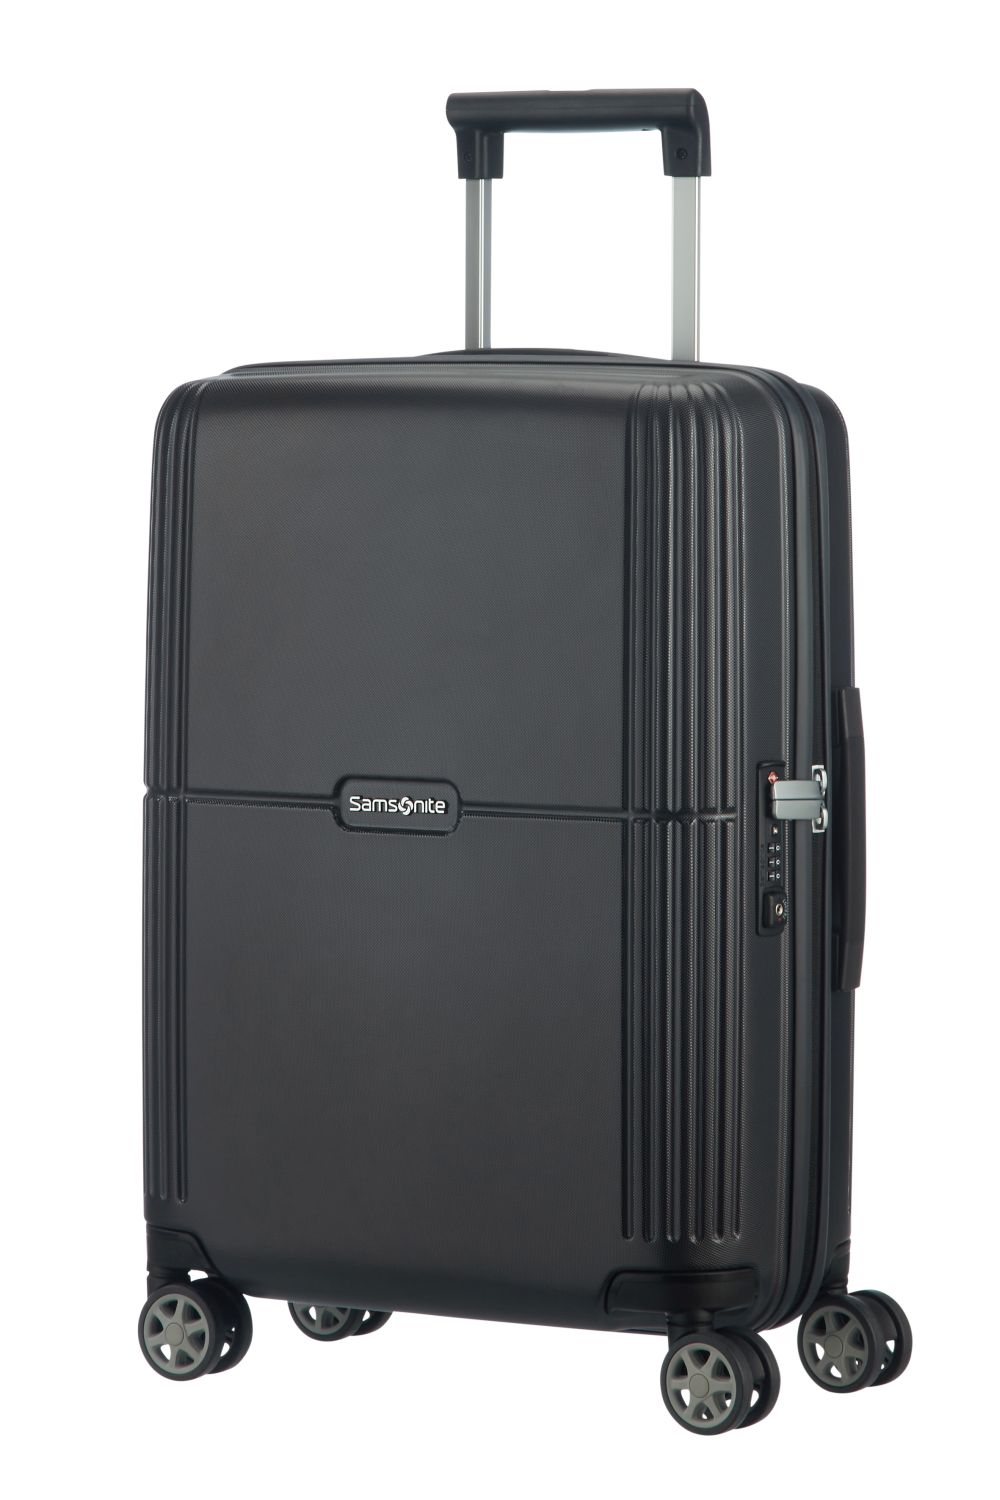 samsonite orfeo spinner 55 20 ink black kofferexpress 24. Black Bedroom Furniture Sets. Home Design Ideas